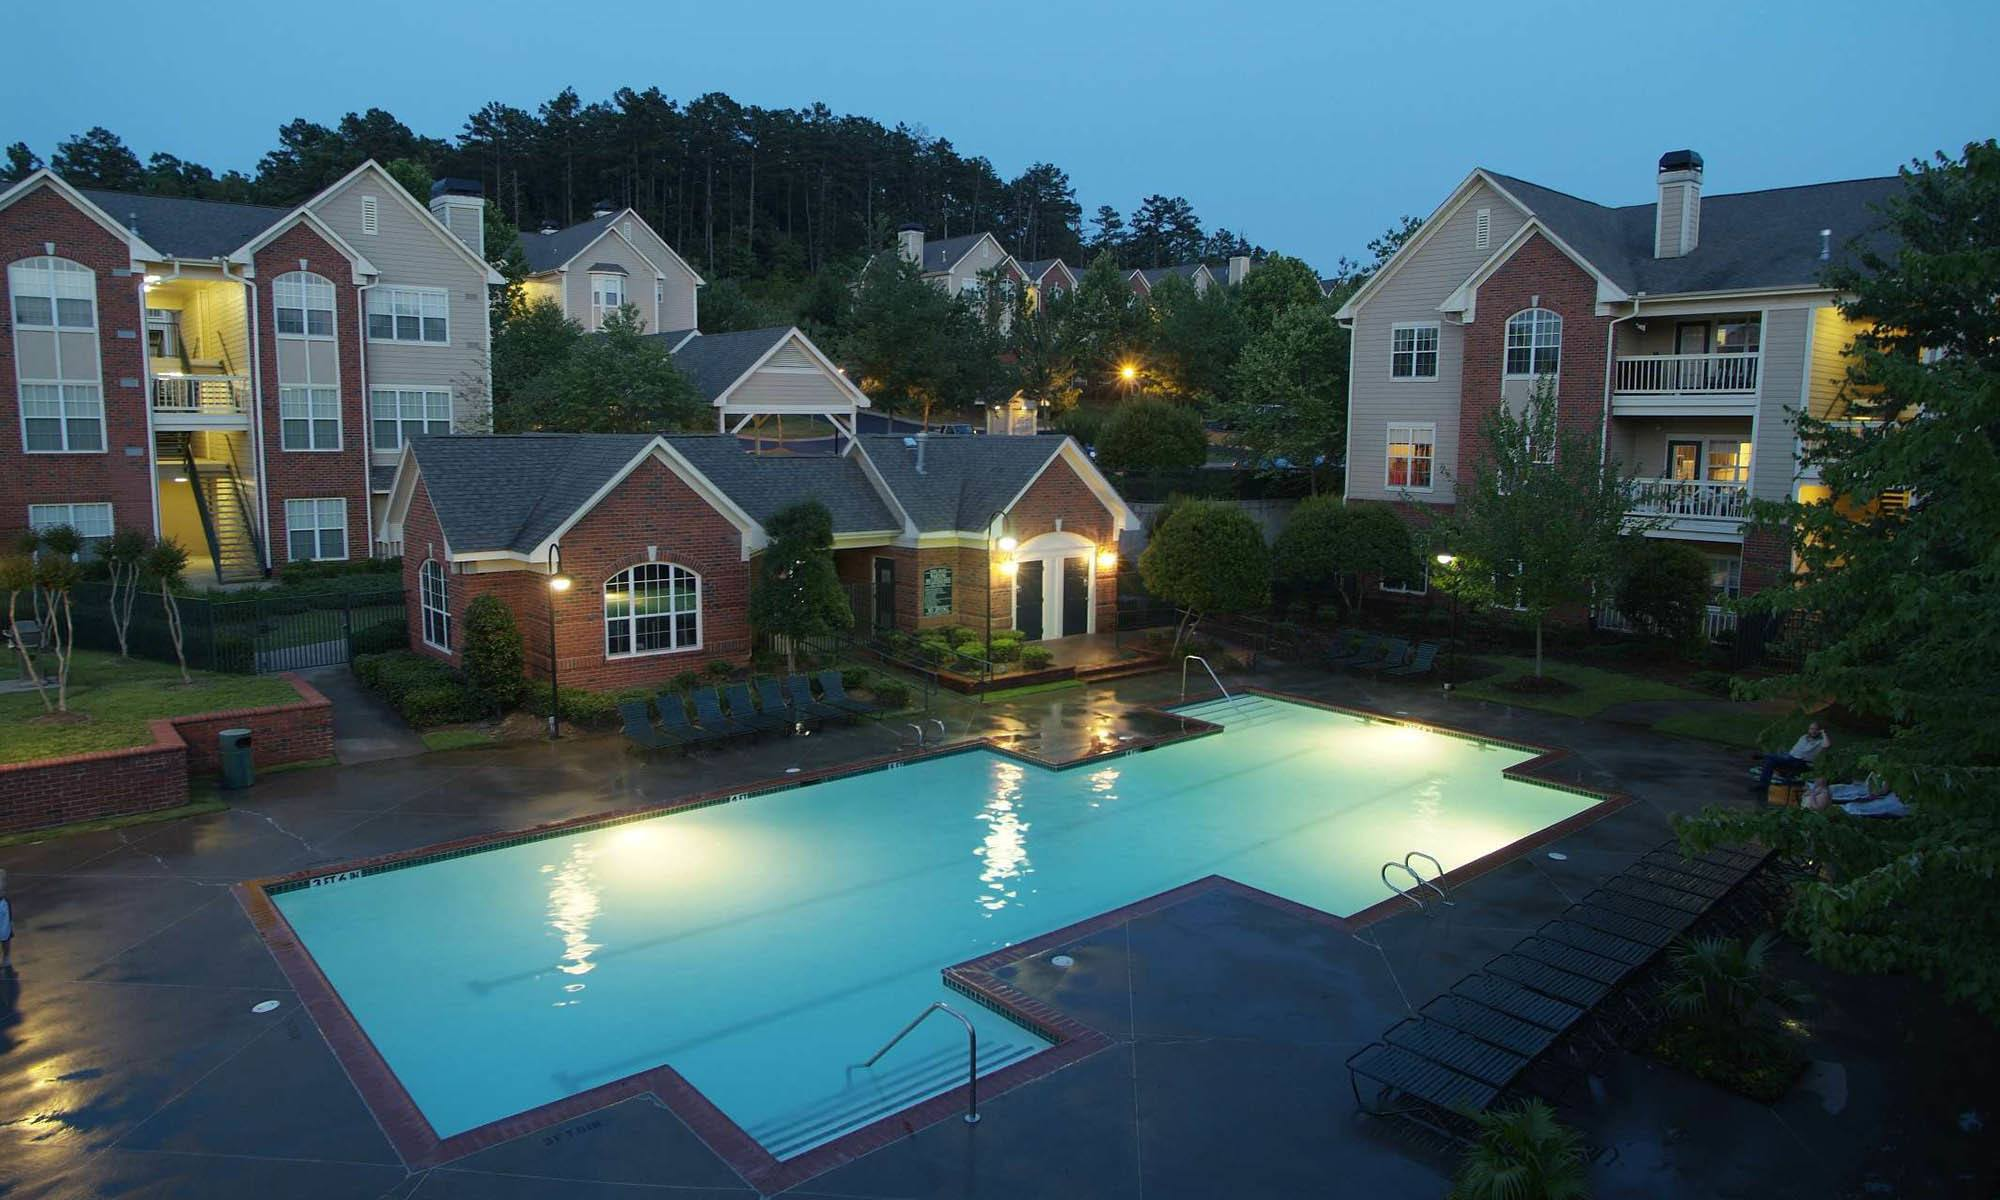 West Little Rock AR Apartments for Rent in the Pleasant Valley